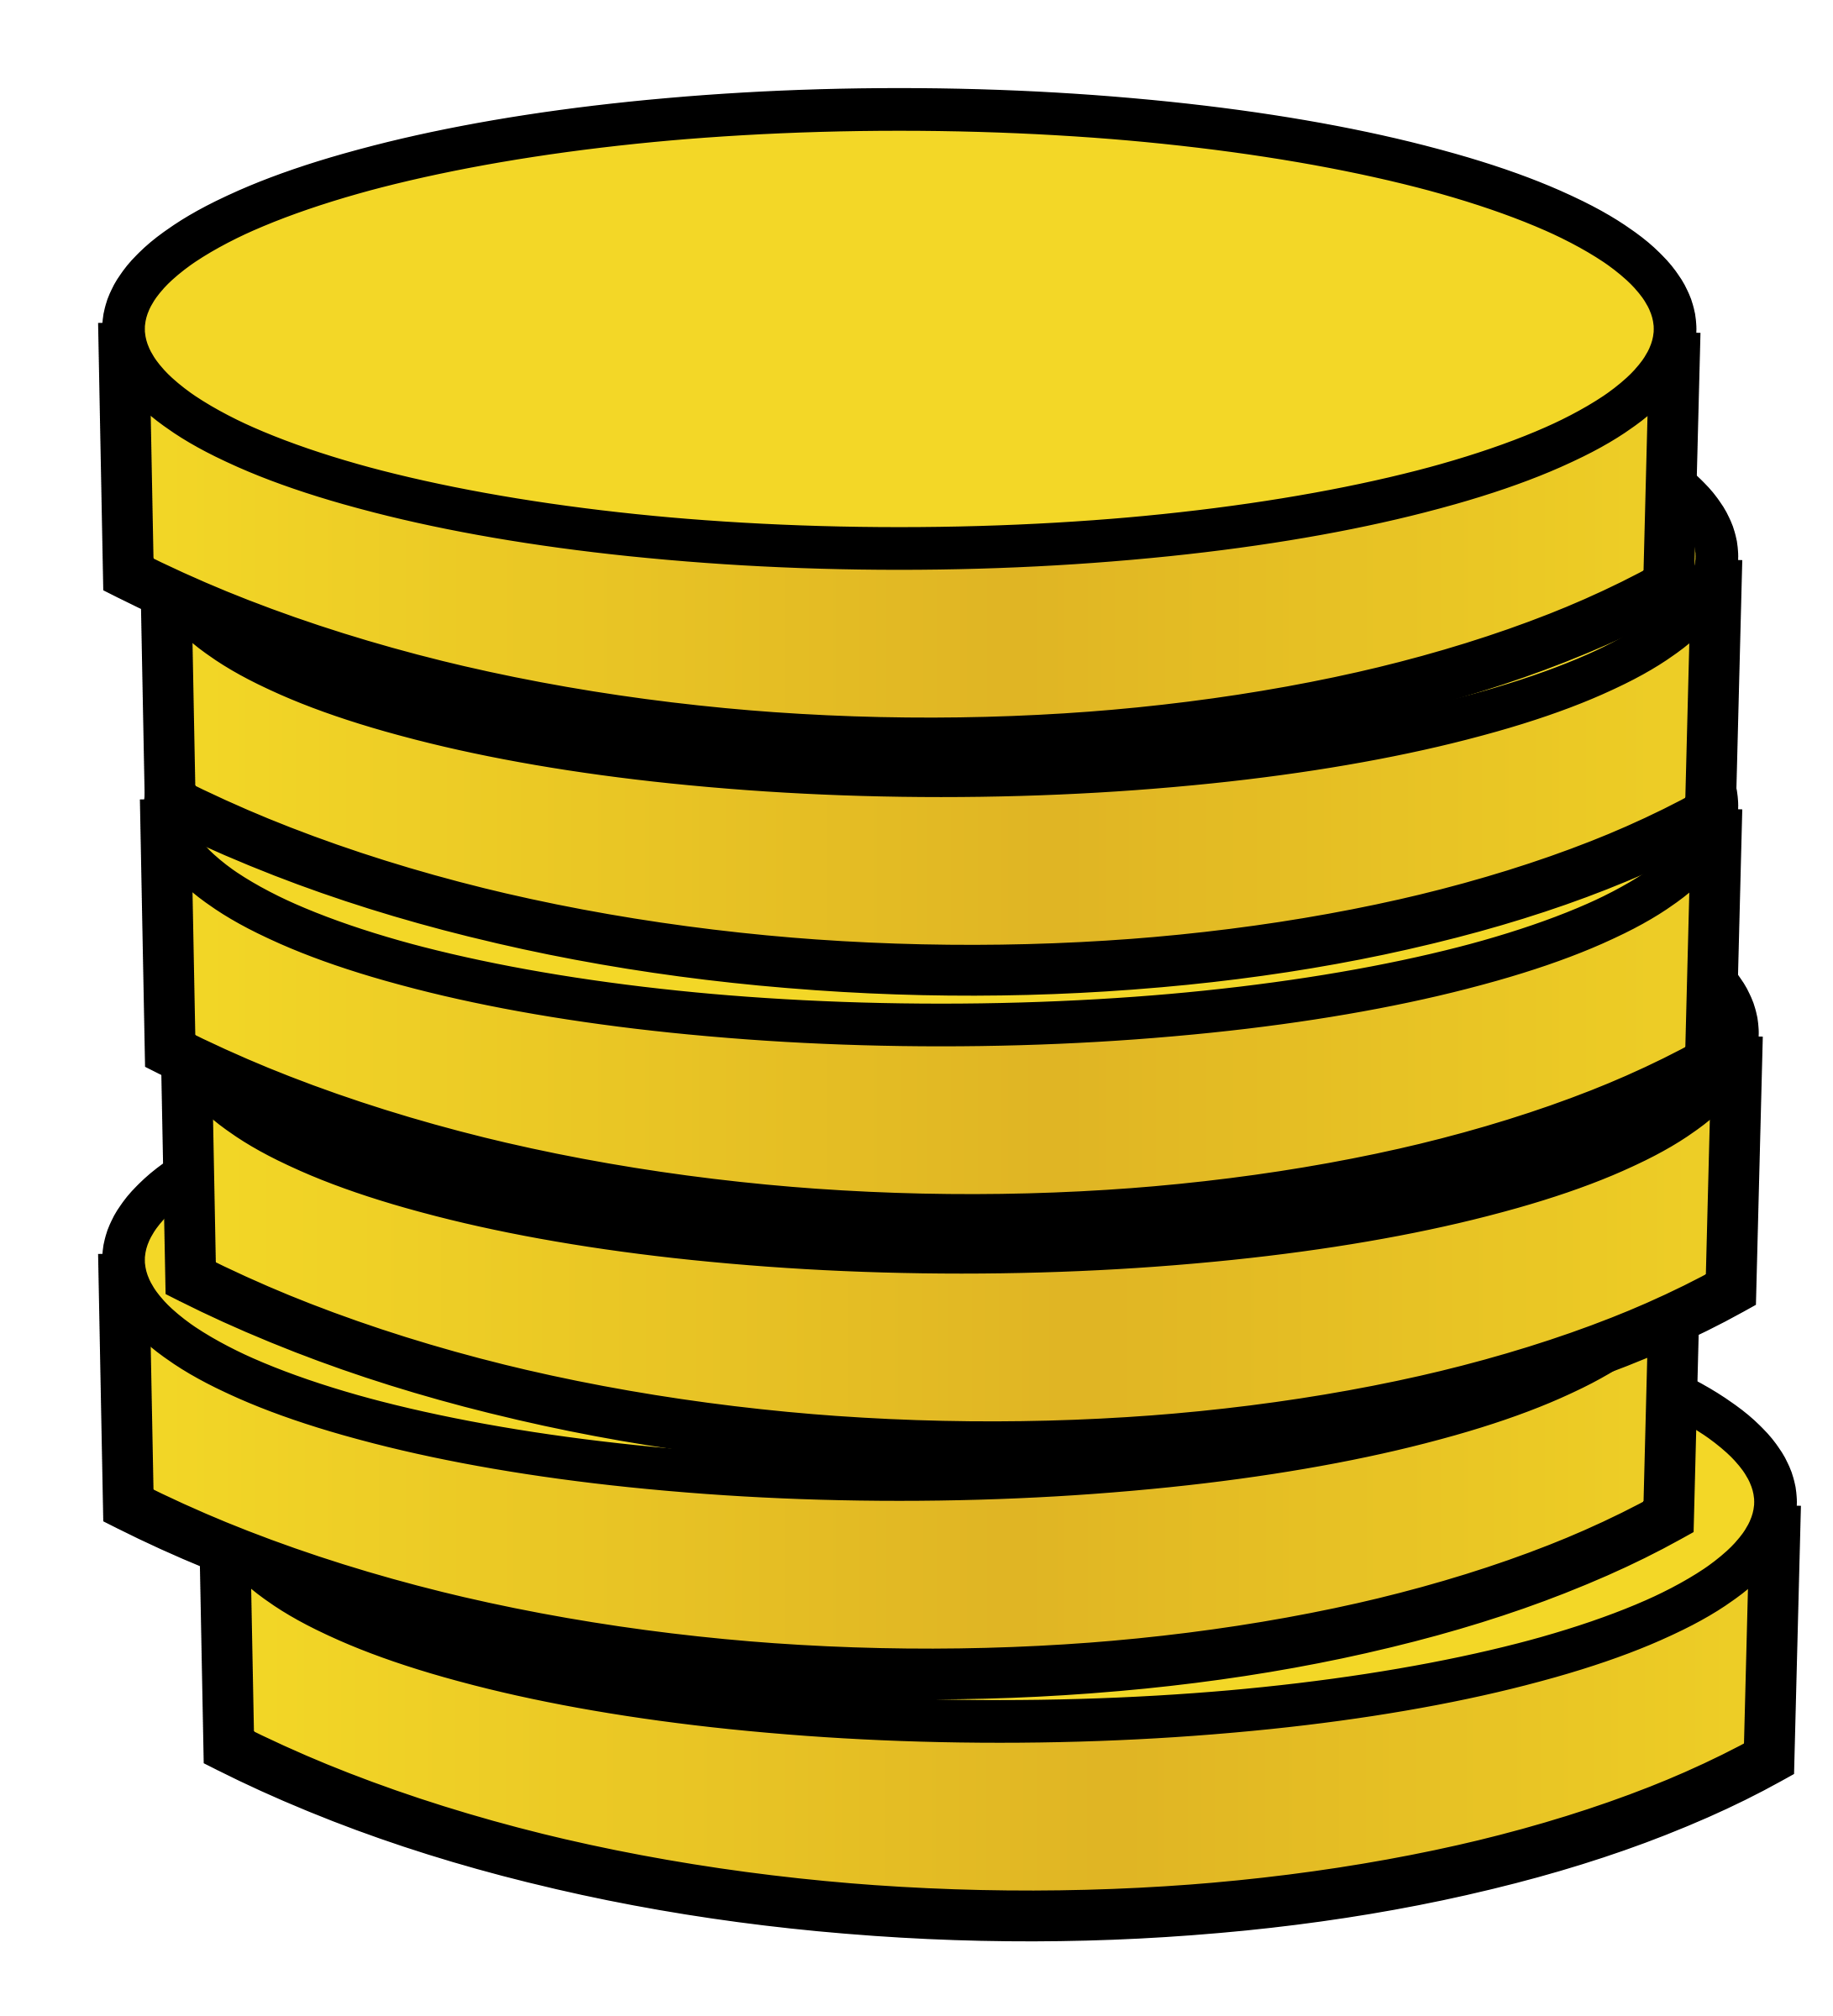 Gold Coin Clipart Clipart Panda Free Clipart Images